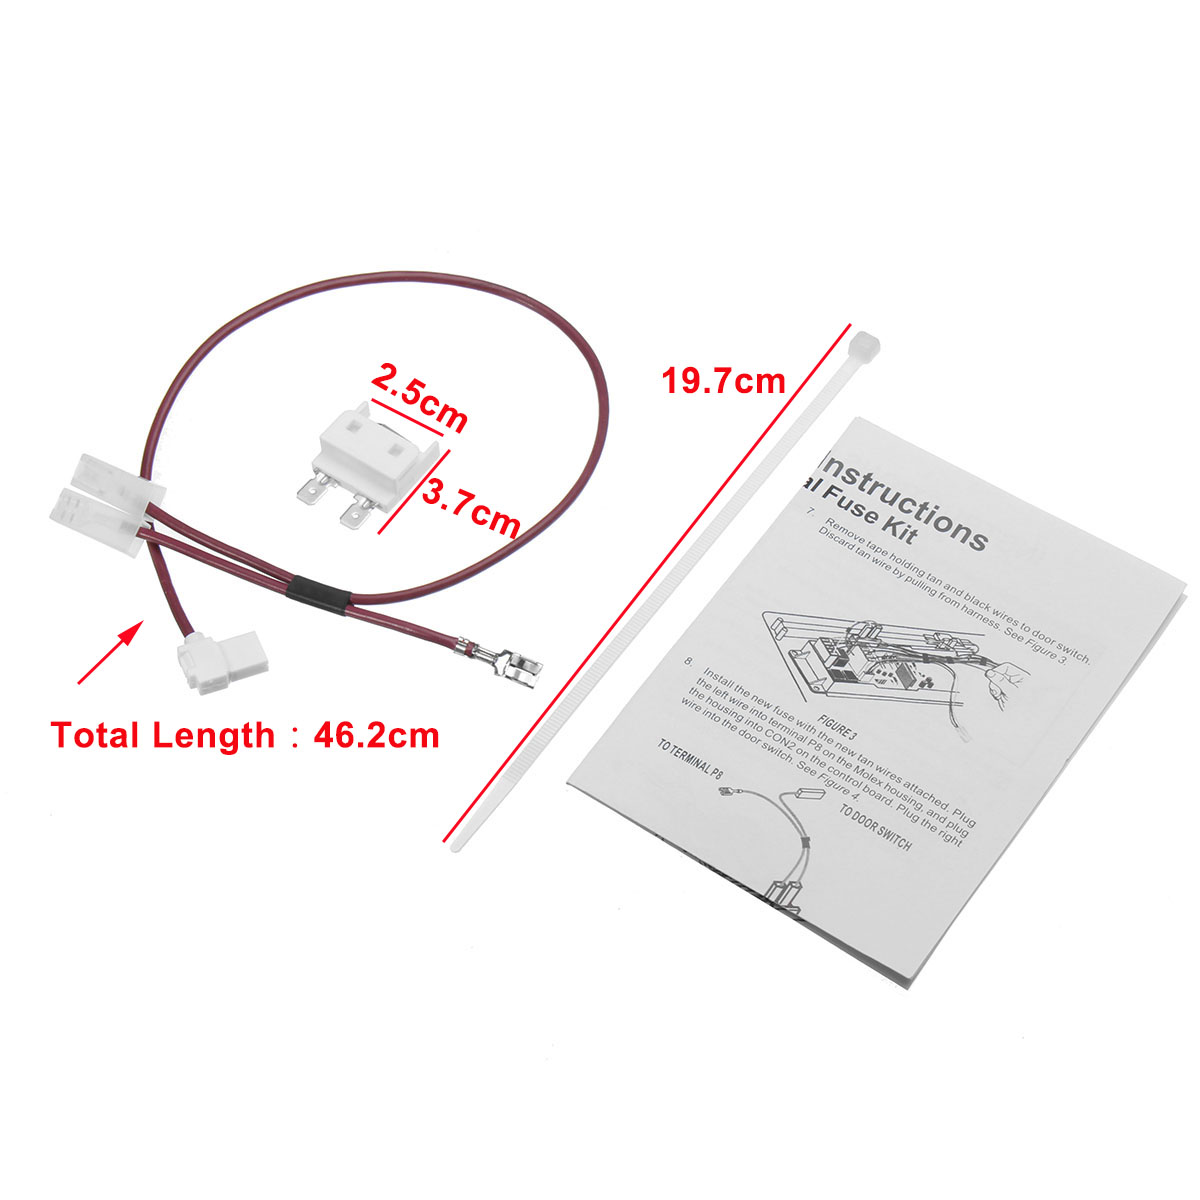 hight resolution of 675813 for whirlpool kenmore dishwasher thermal fuse link for door switch